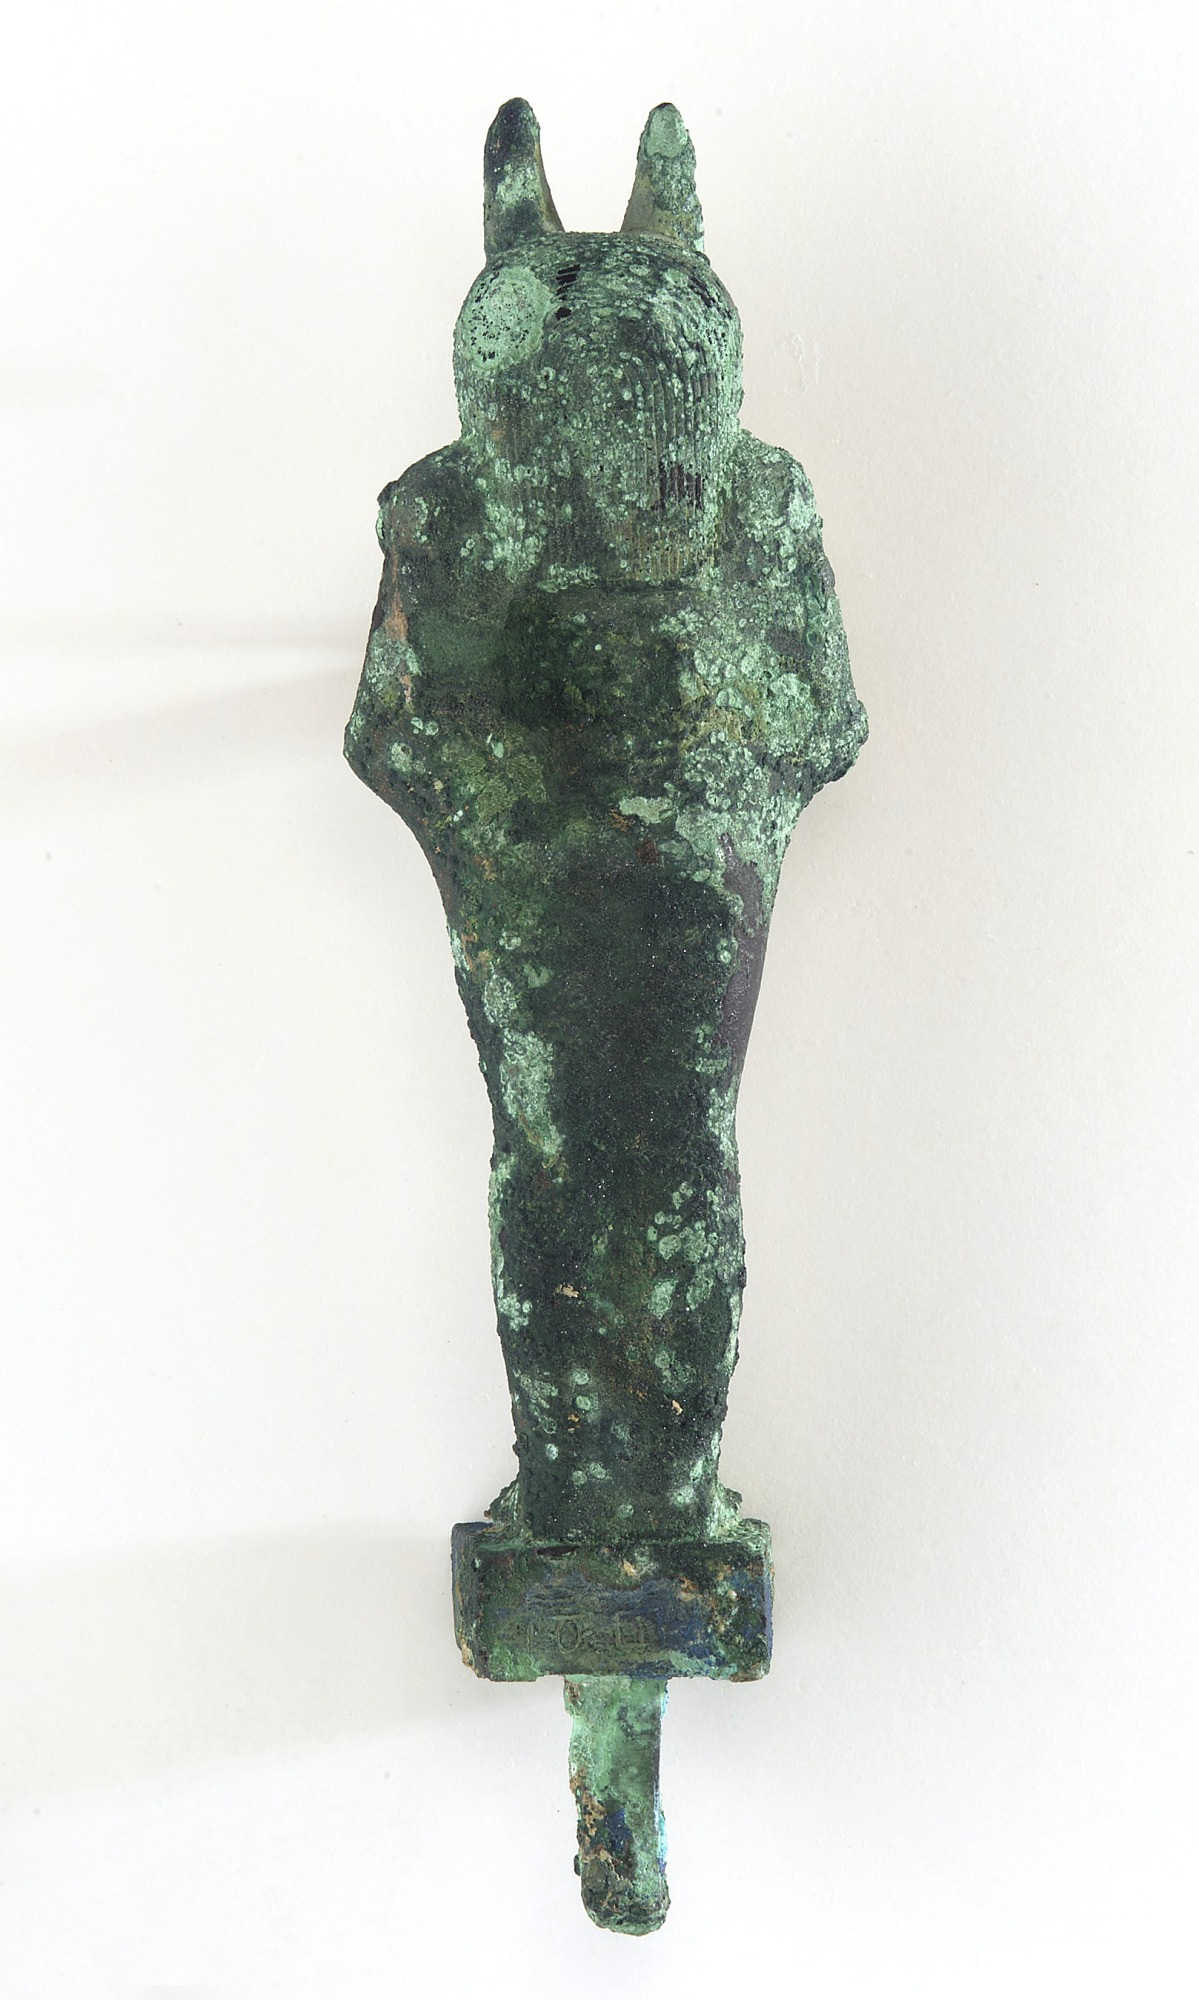 back: Statuette of Anubis